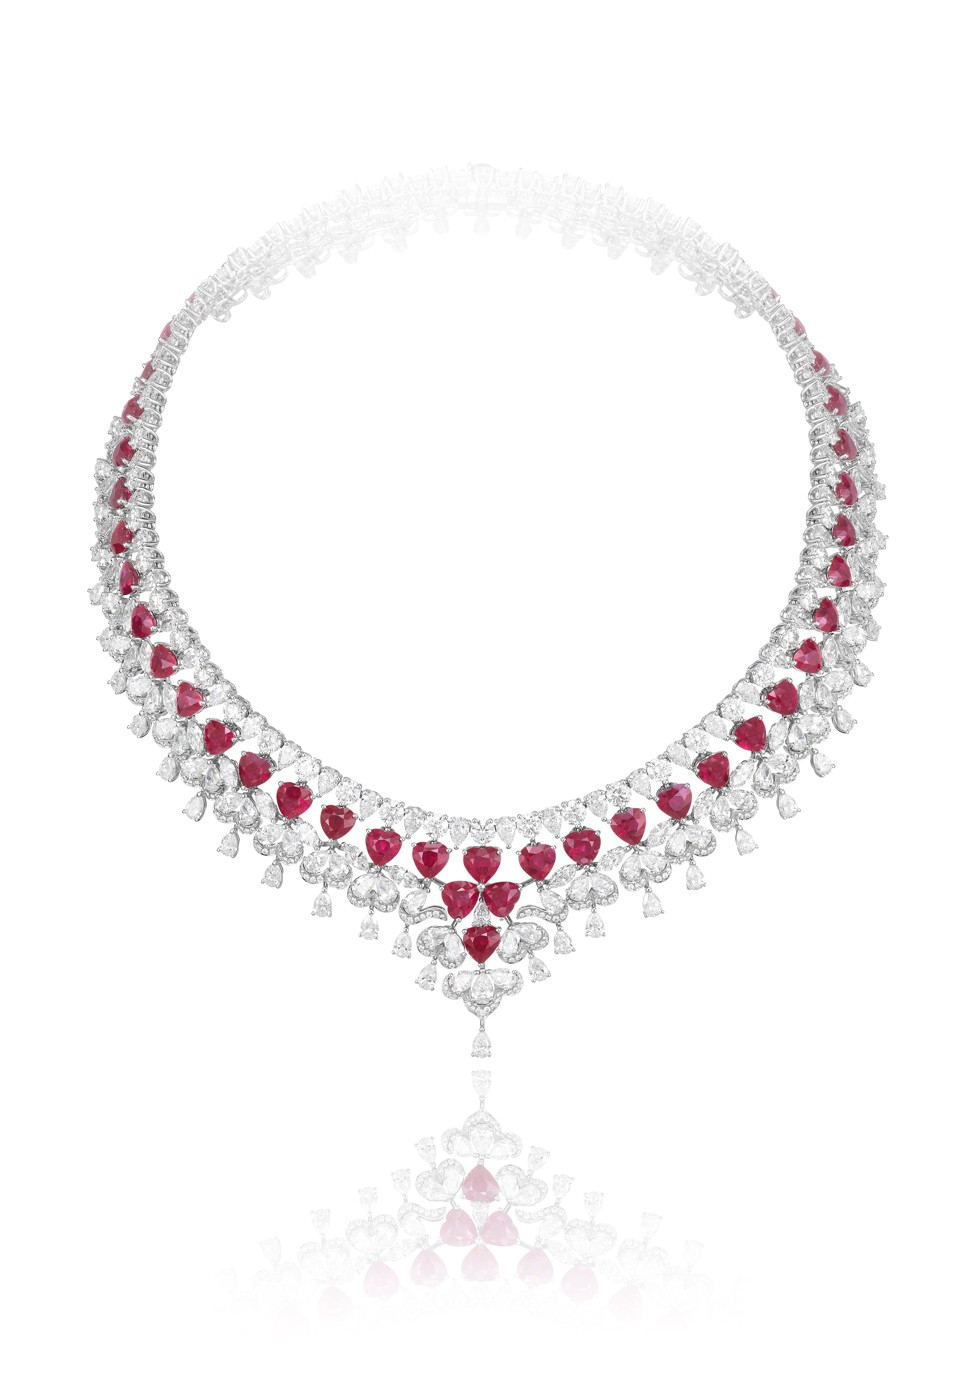 5 ruby statement jewellery pieces that sparkle in the